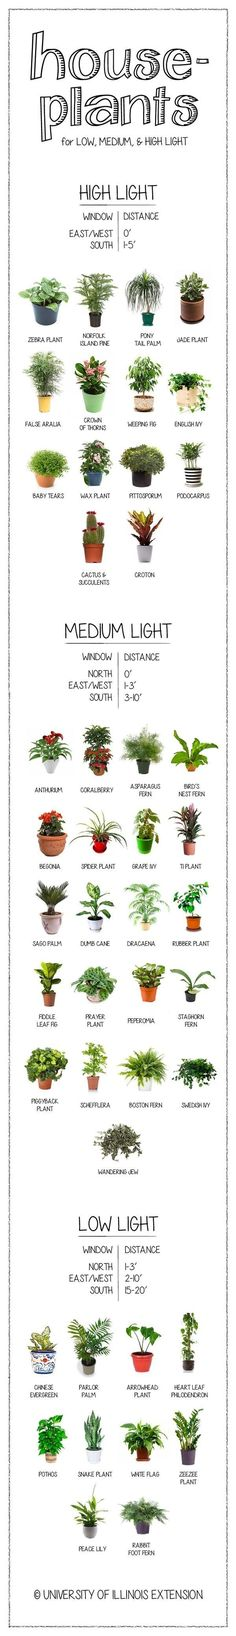 // How much light does your houseplant need? Find out on this handy chart. | 23 Diagrams That Make Gardening So Much Easier